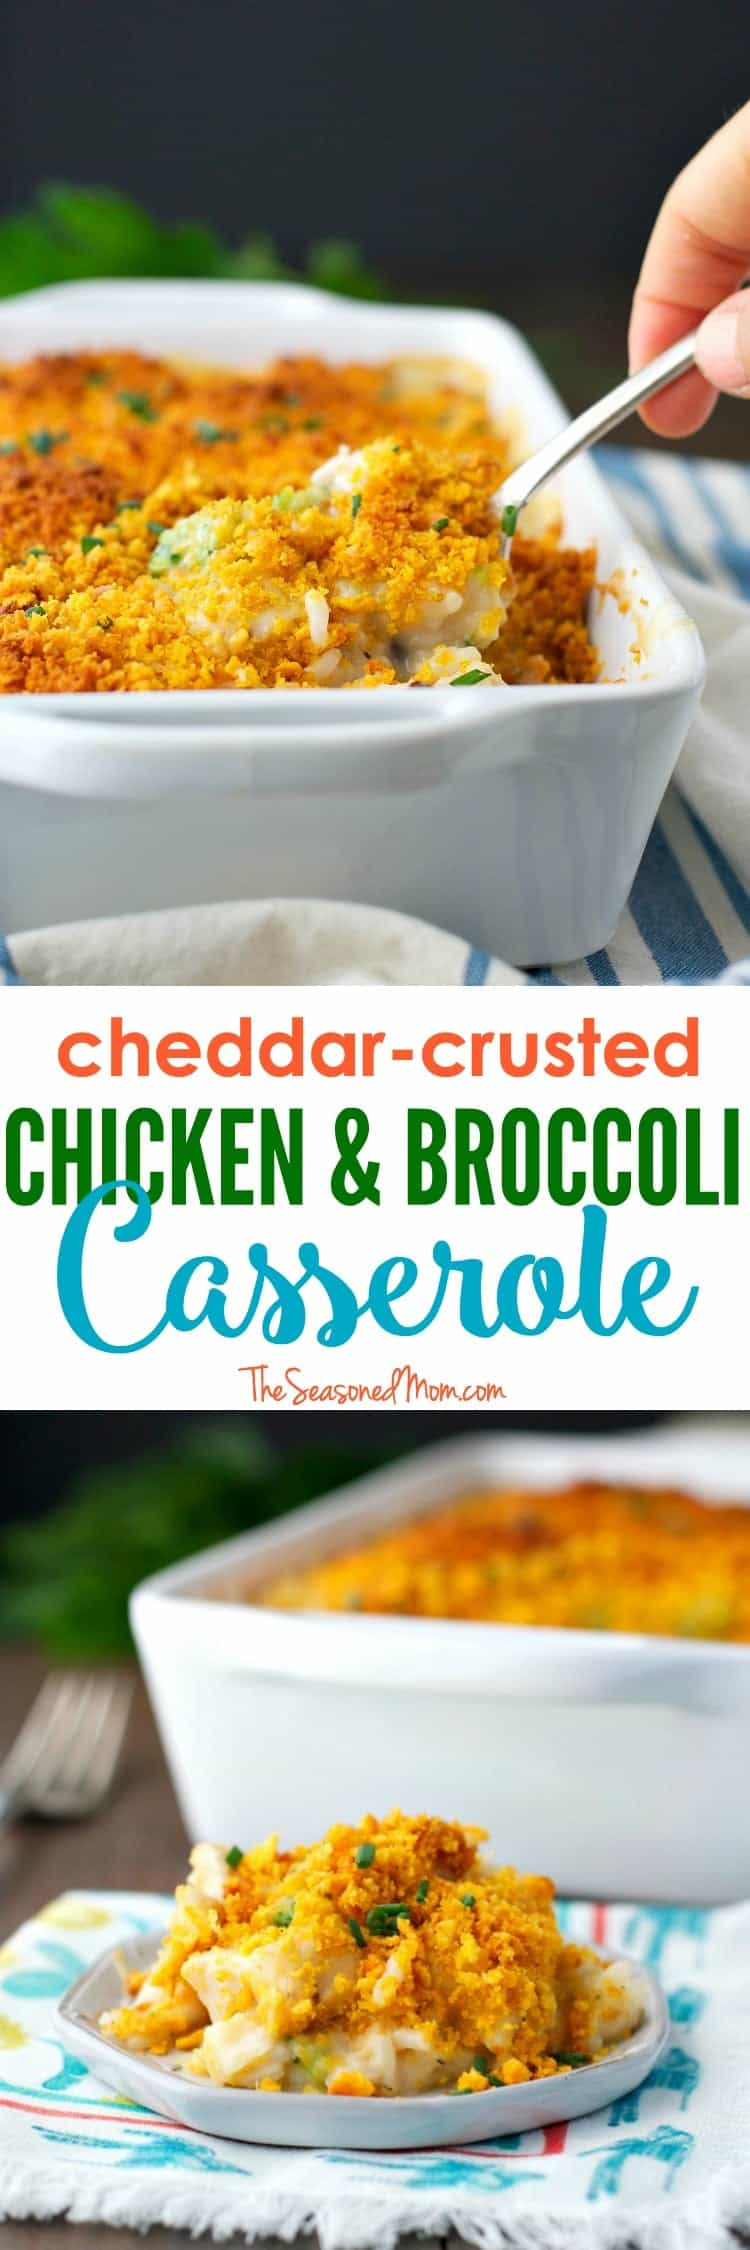 This Cheddar Crusted Chicken and Broccoli Casserole is an easy and wholesome weeknight dinner that's perfect for picky little eaters! Just in time for back-to-school season and cool fall evenings, it's a great make-ahead option for busy days!